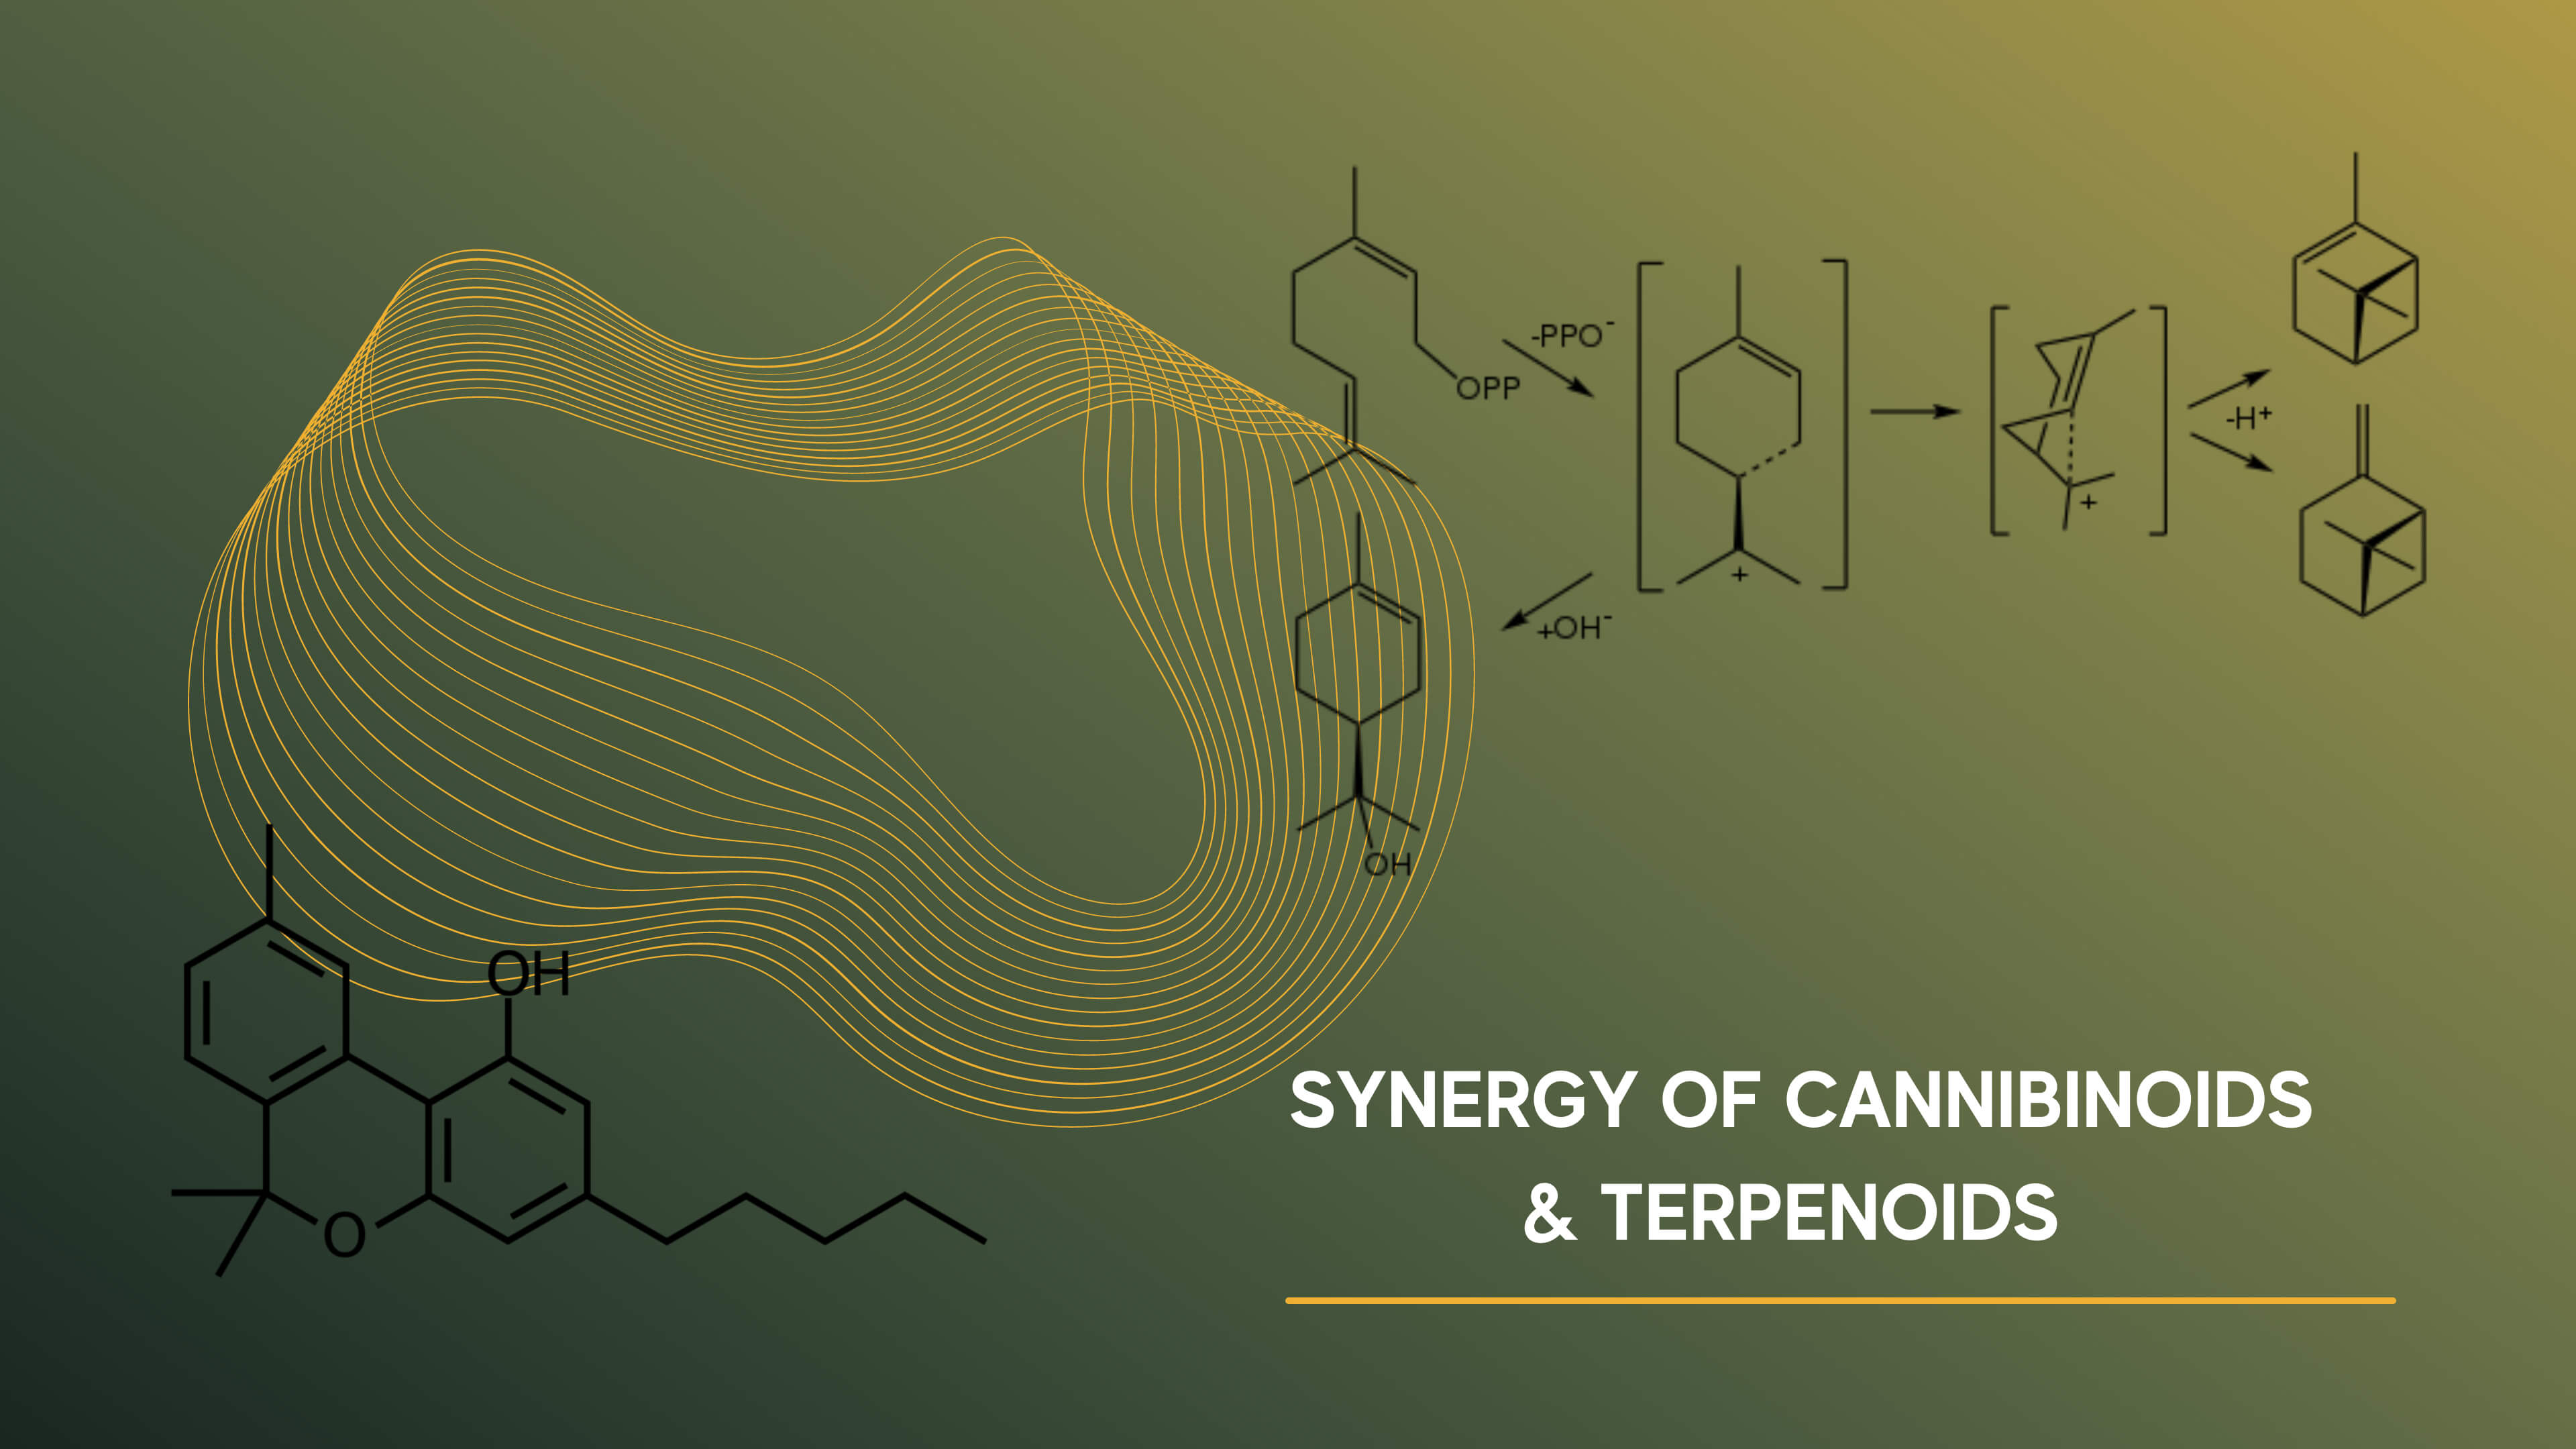 Graphic Synergy of cannabinoids and terpenoids science